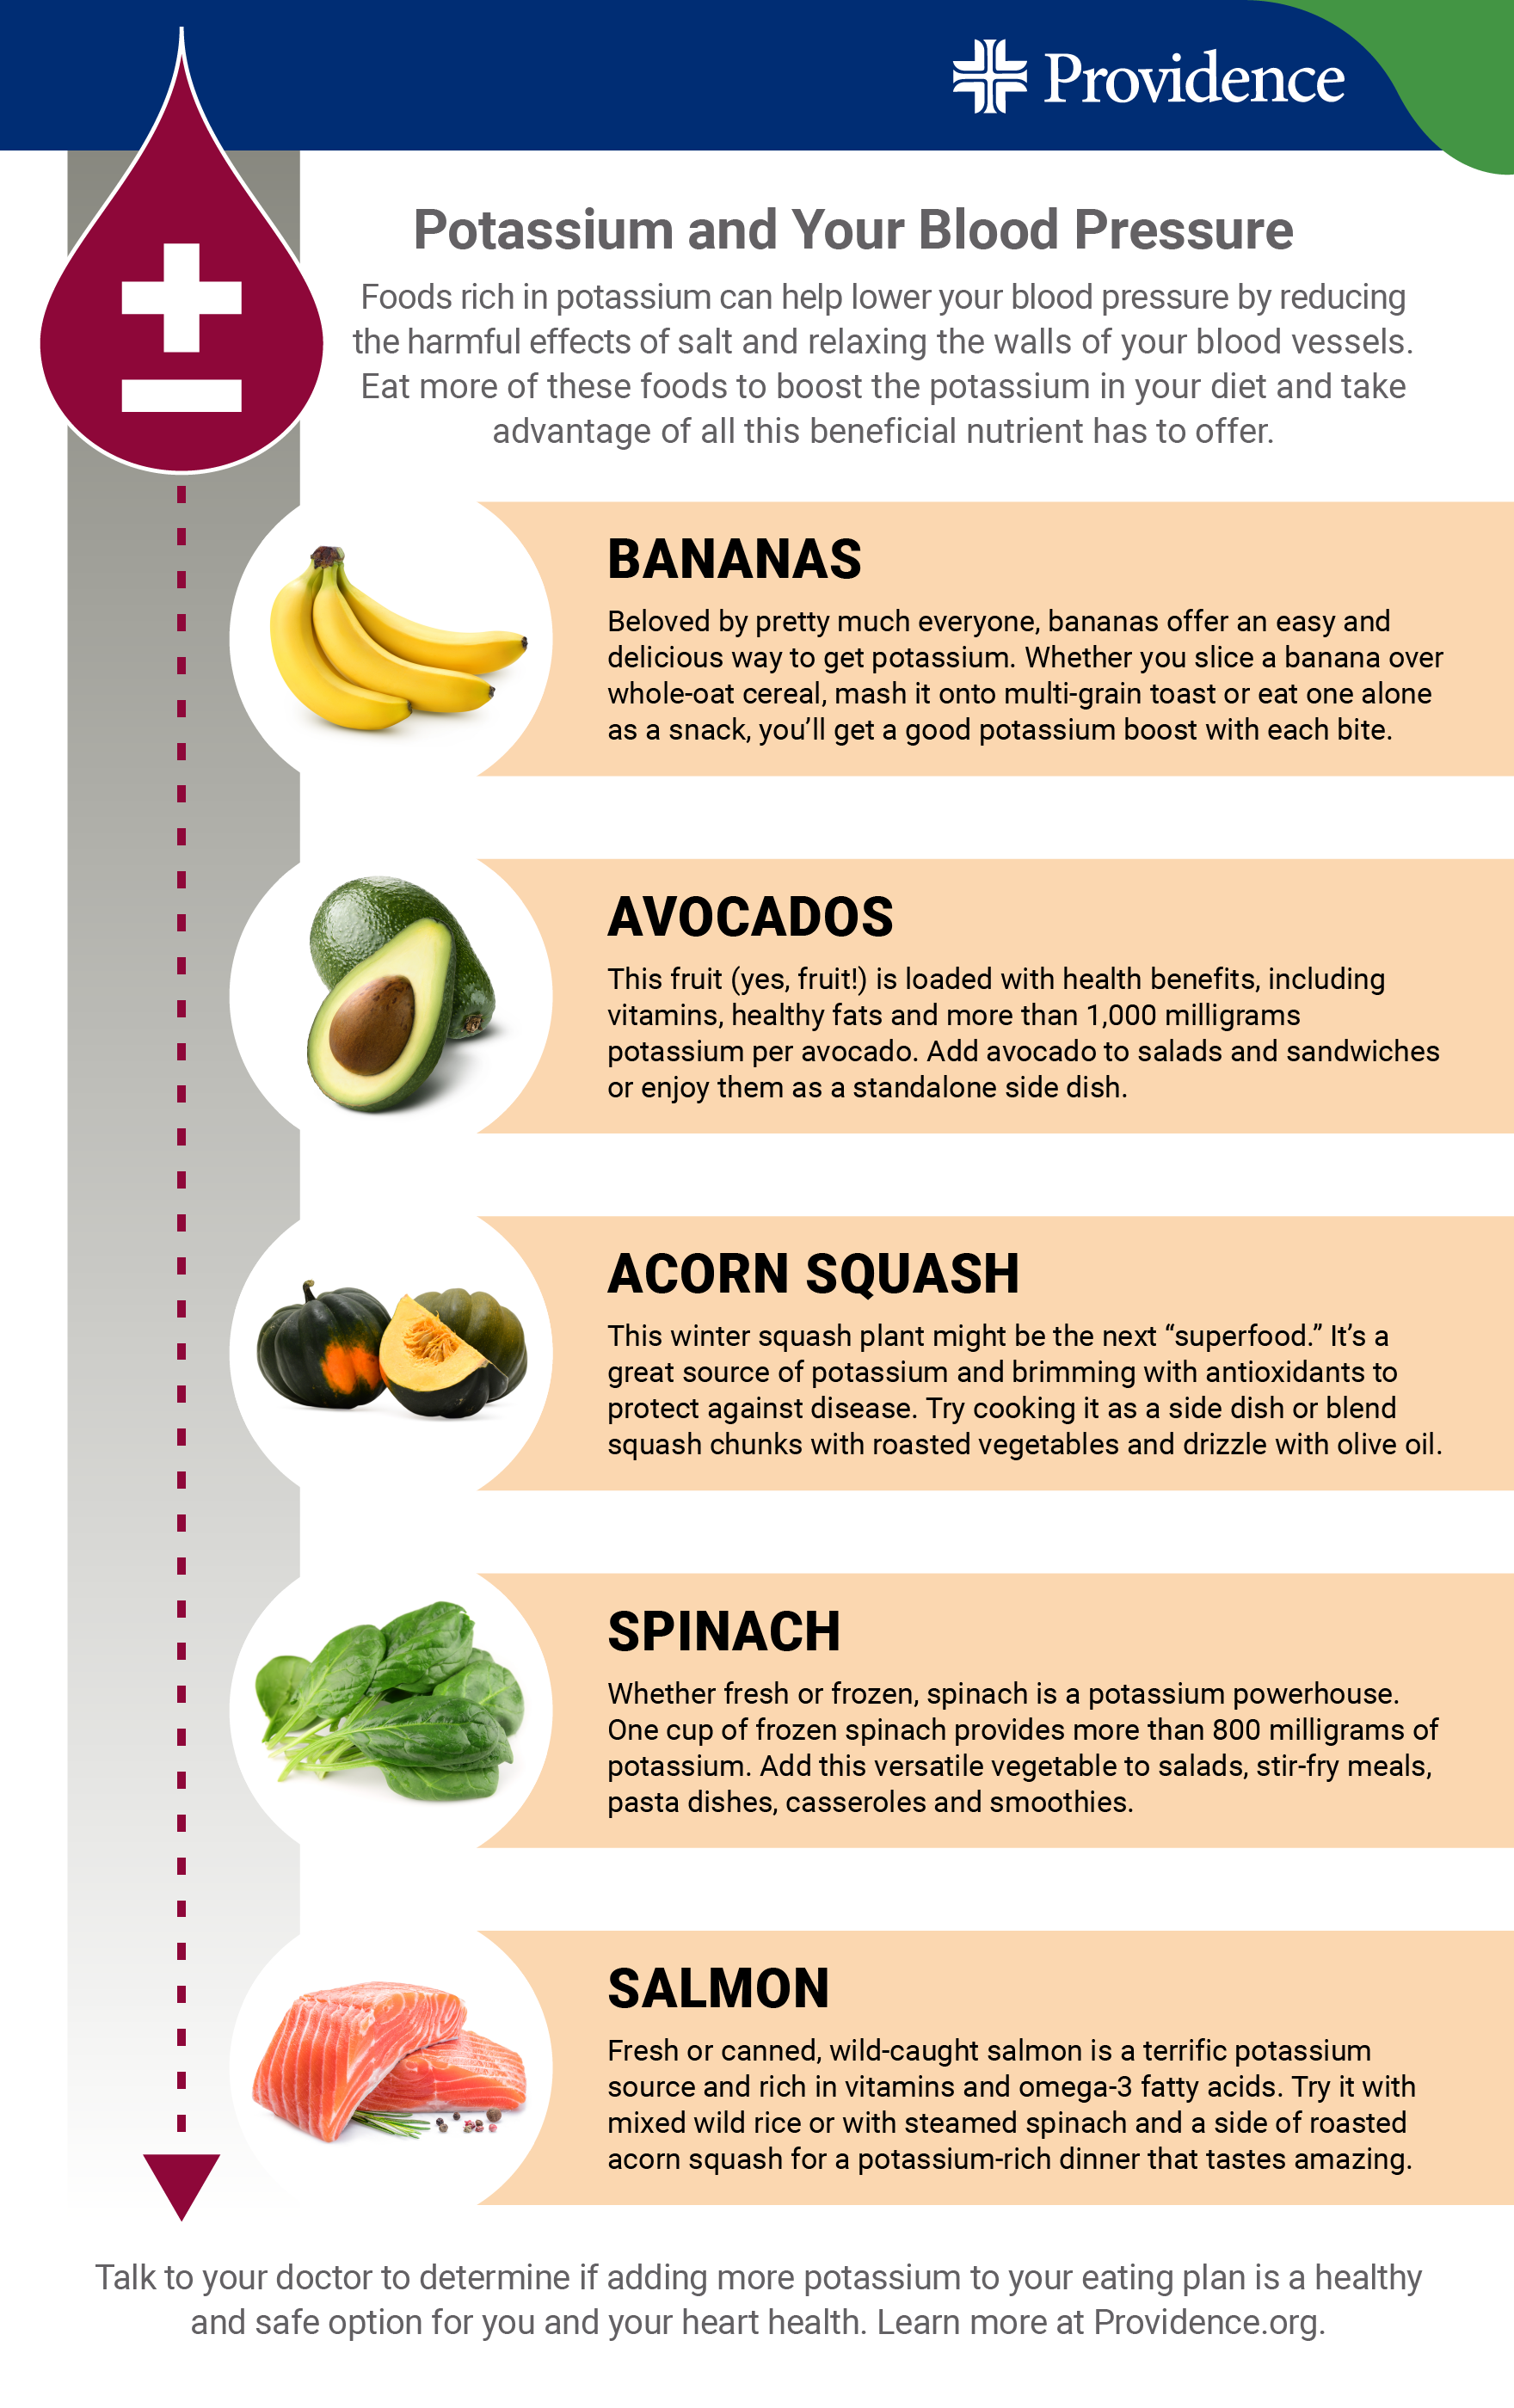 20 foods rich in potassium to help reduce high blood pressure